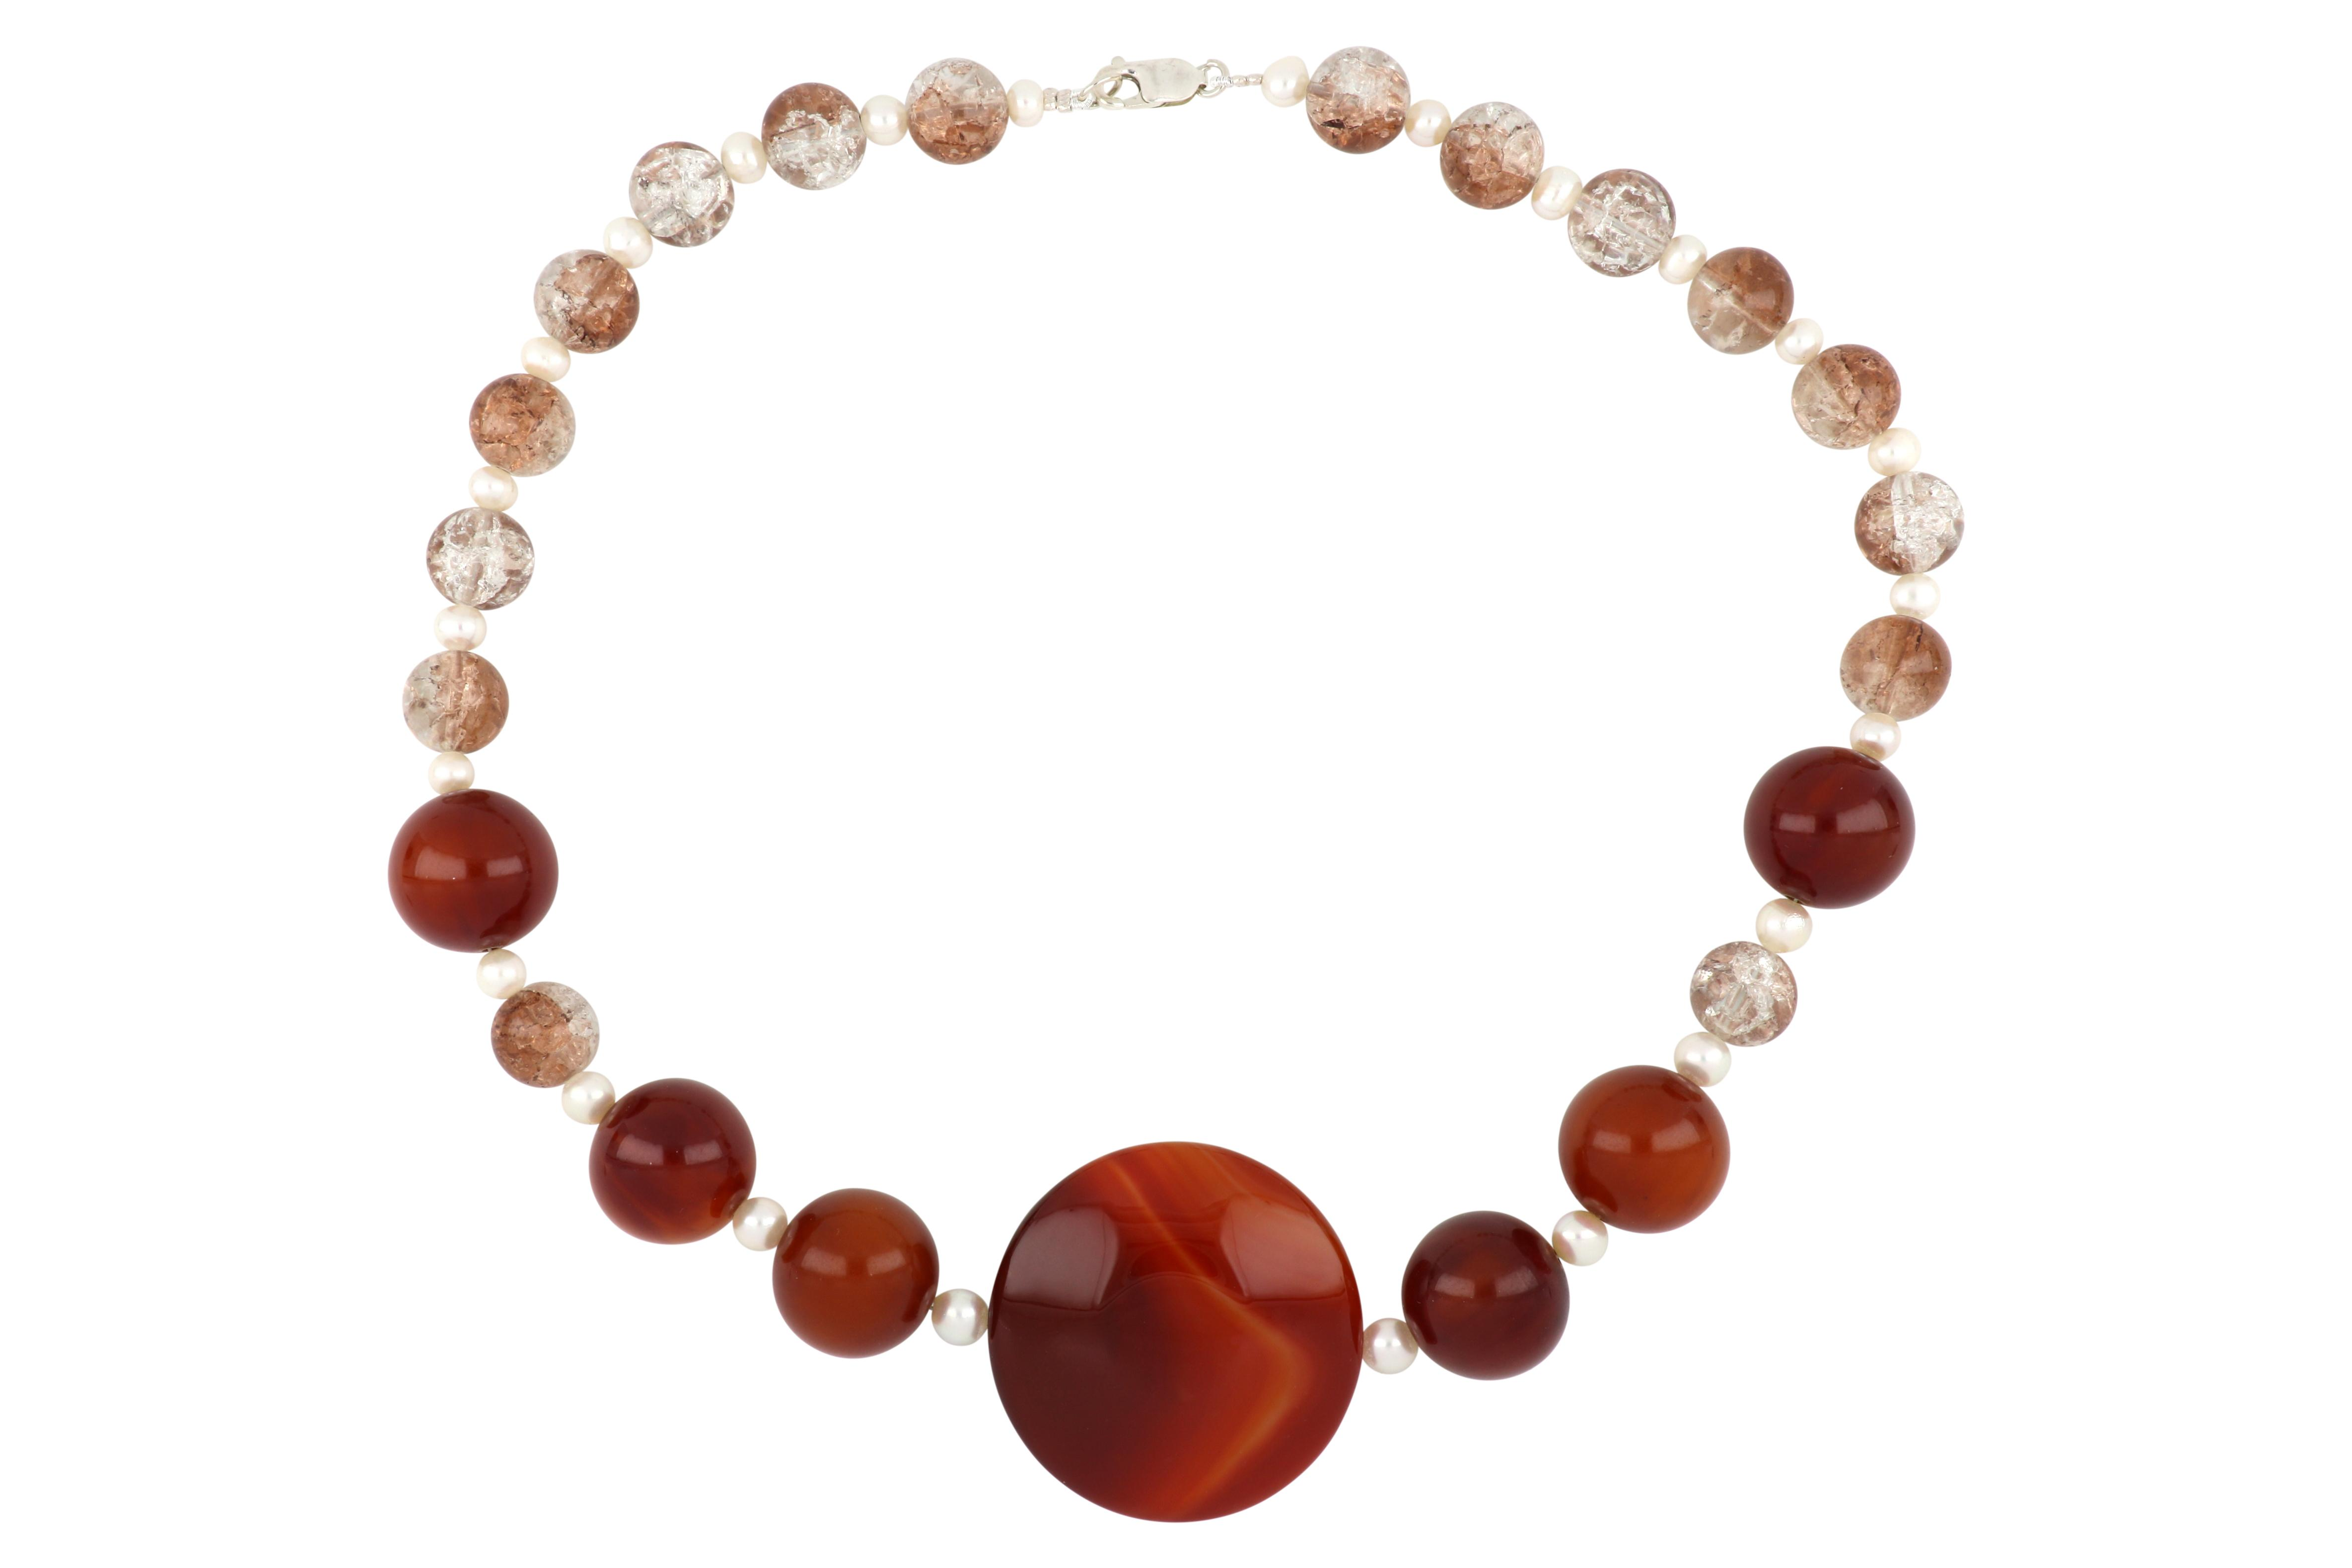 Vintage agate,amber,rock crystal and pearl necklace, 48 cms long, Weight 105.00 grams